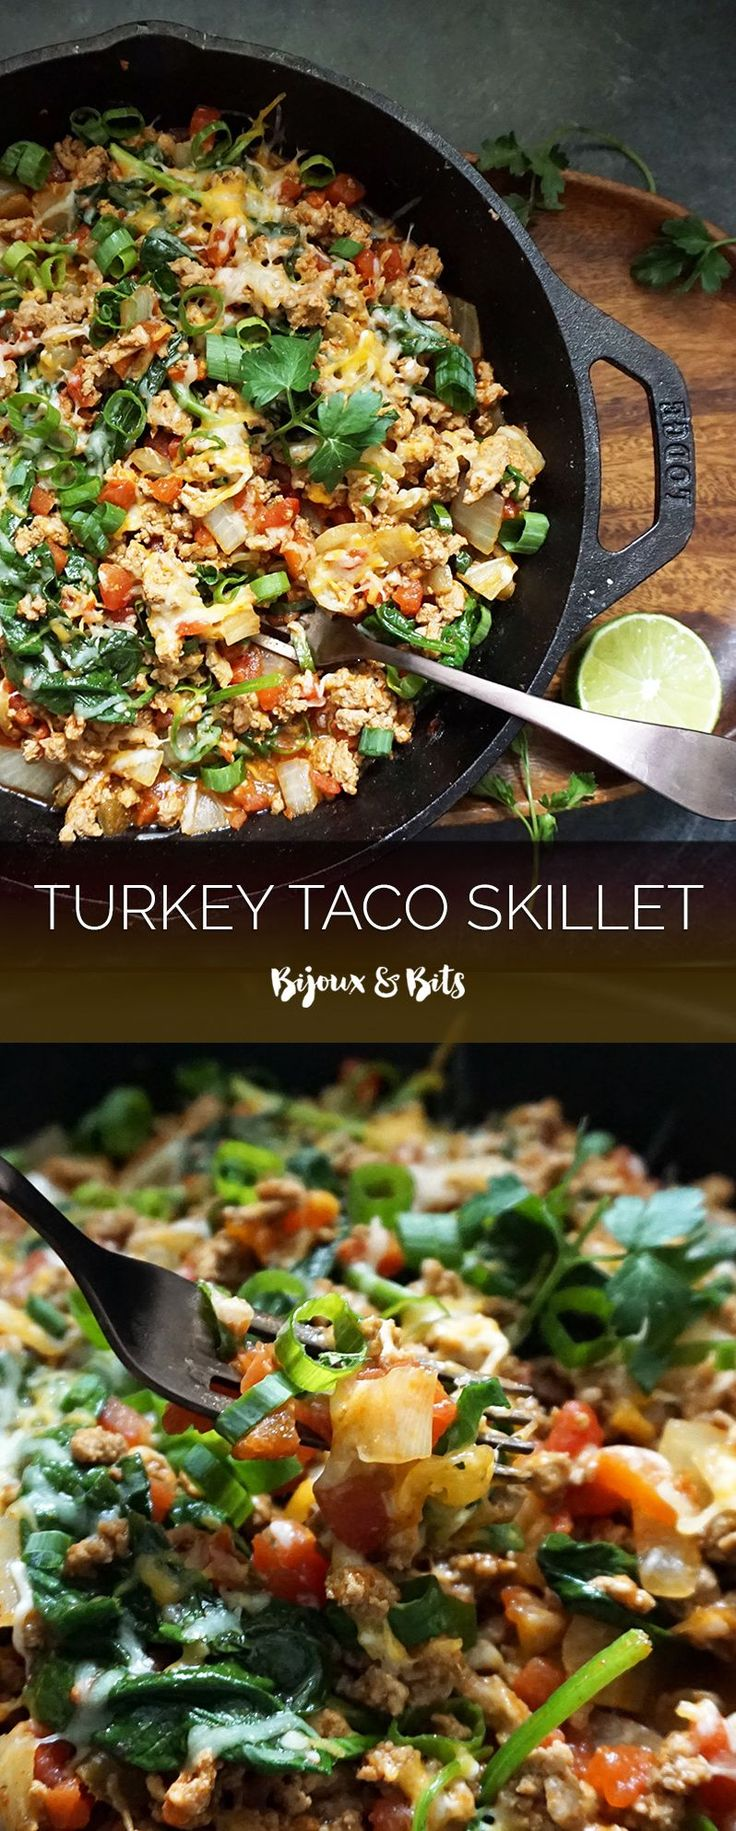 One pot turkey taco skillet Changes: Added Poblano Peppers (2), used shredded Monterey Jack cheese instead of a pre-shredded Mexican blend and used one large (28oz) can of Rotel